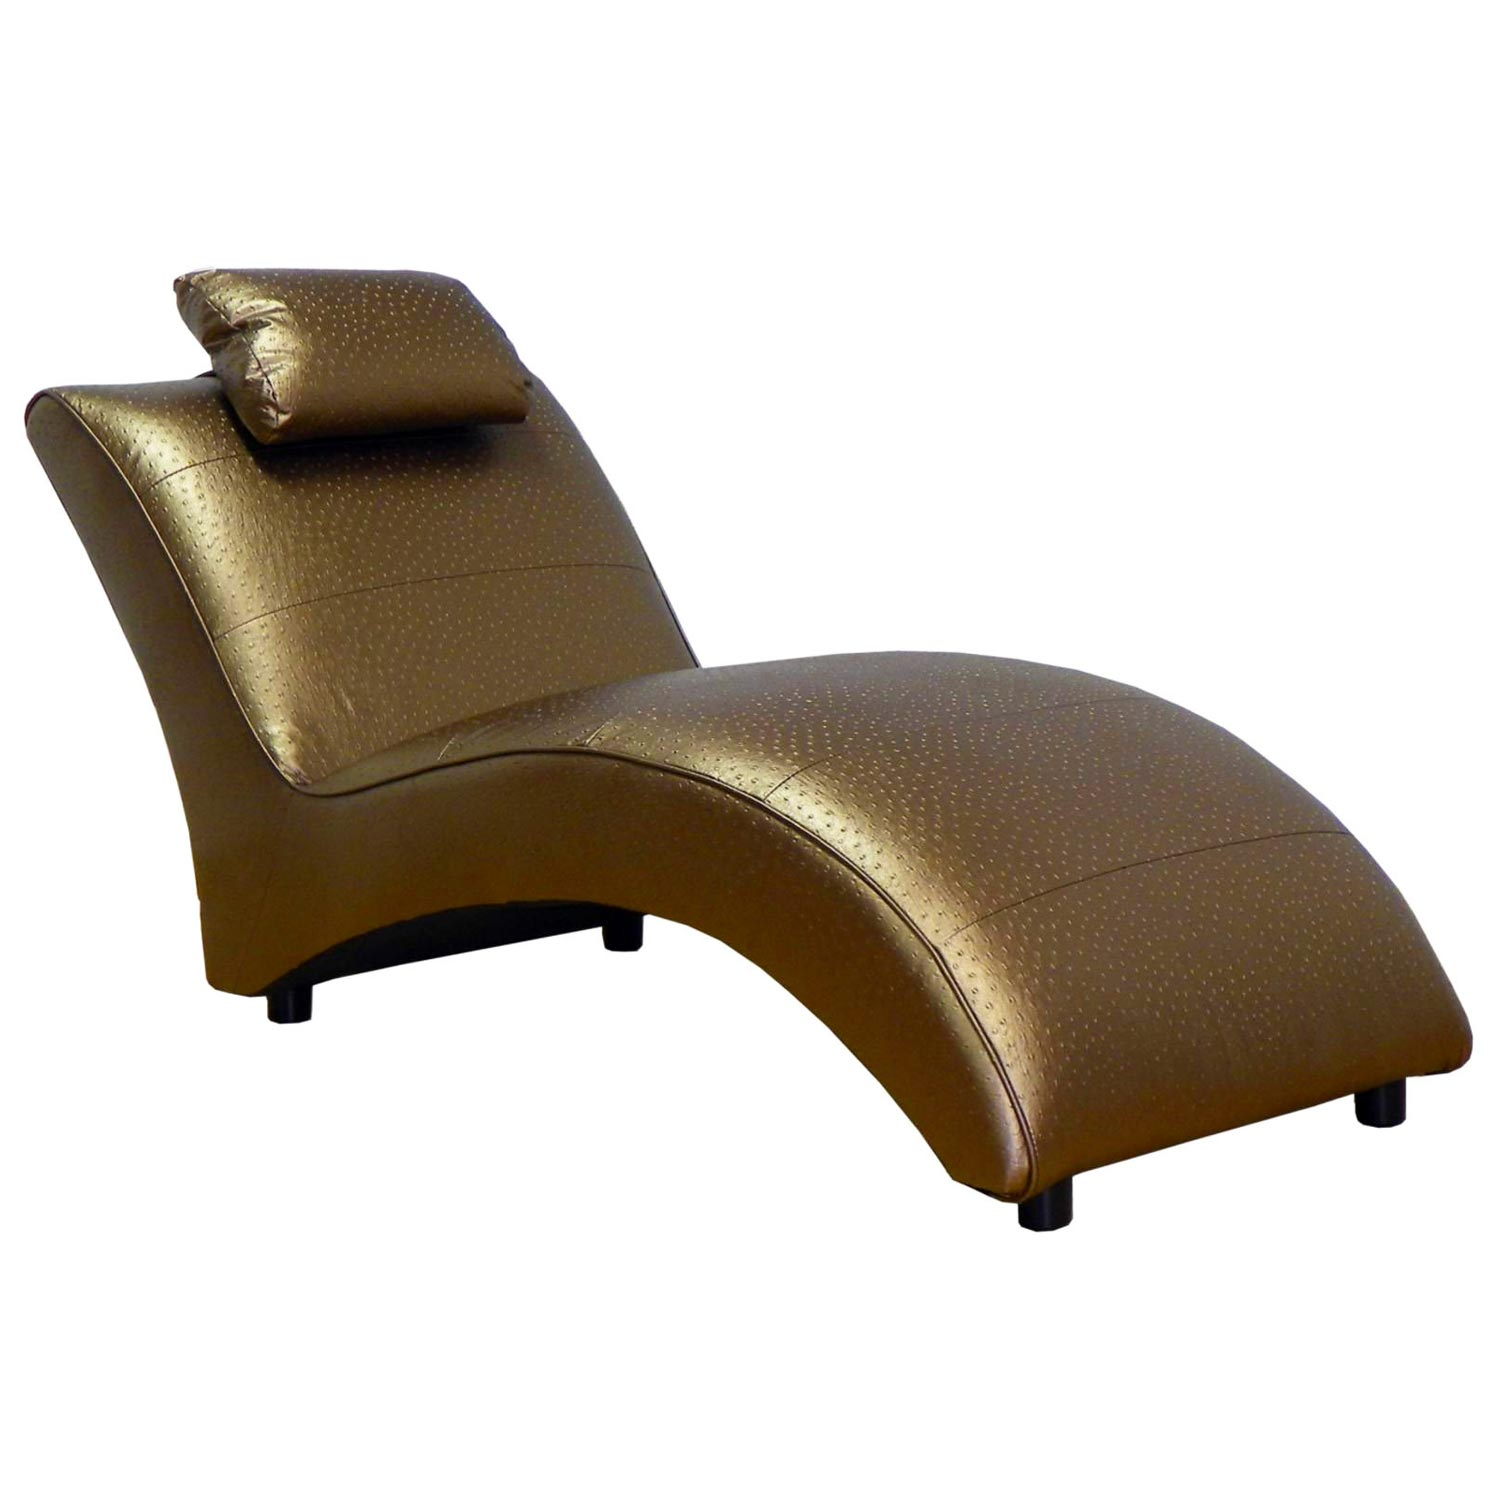 Penny Furniture: Blaine Chaise Lounge - Ostrich Penny Upholstery